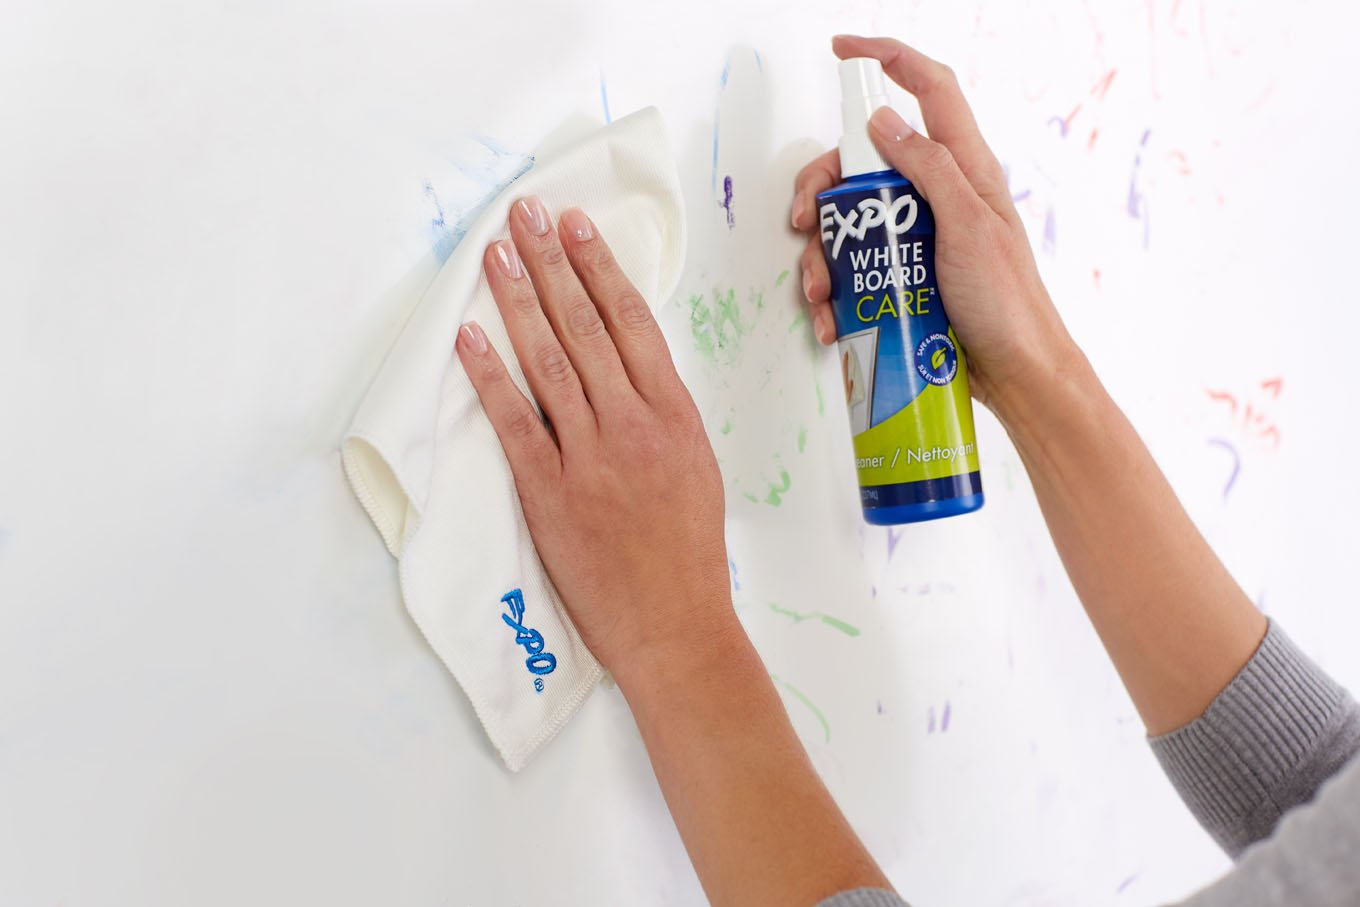 spray-cleaner-and-towel-used-to-erase-whiteboard.jpg